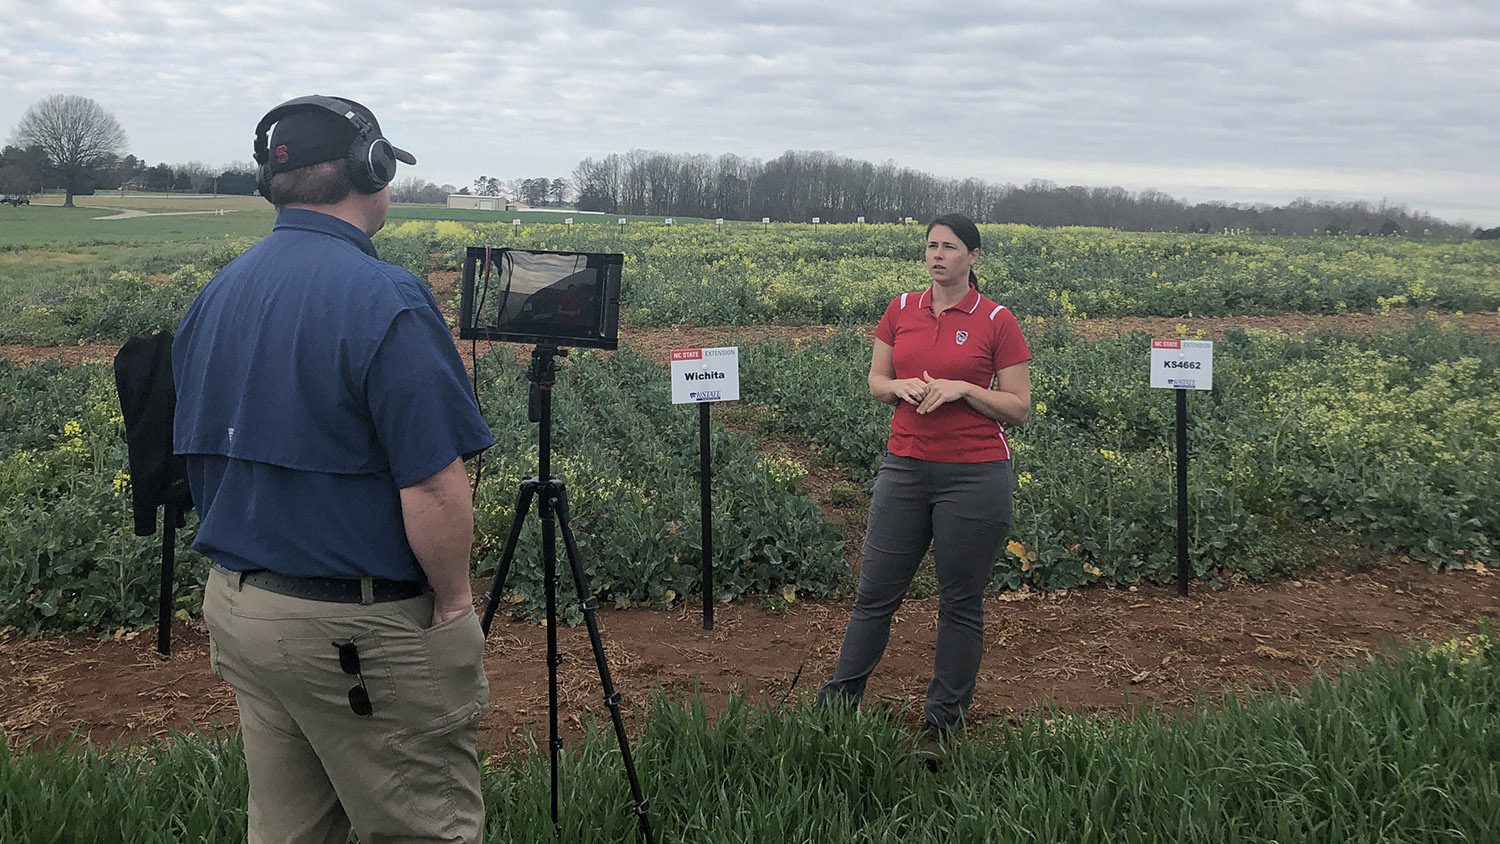 A videographer records a scientist discussing agricultural research at a field plot.